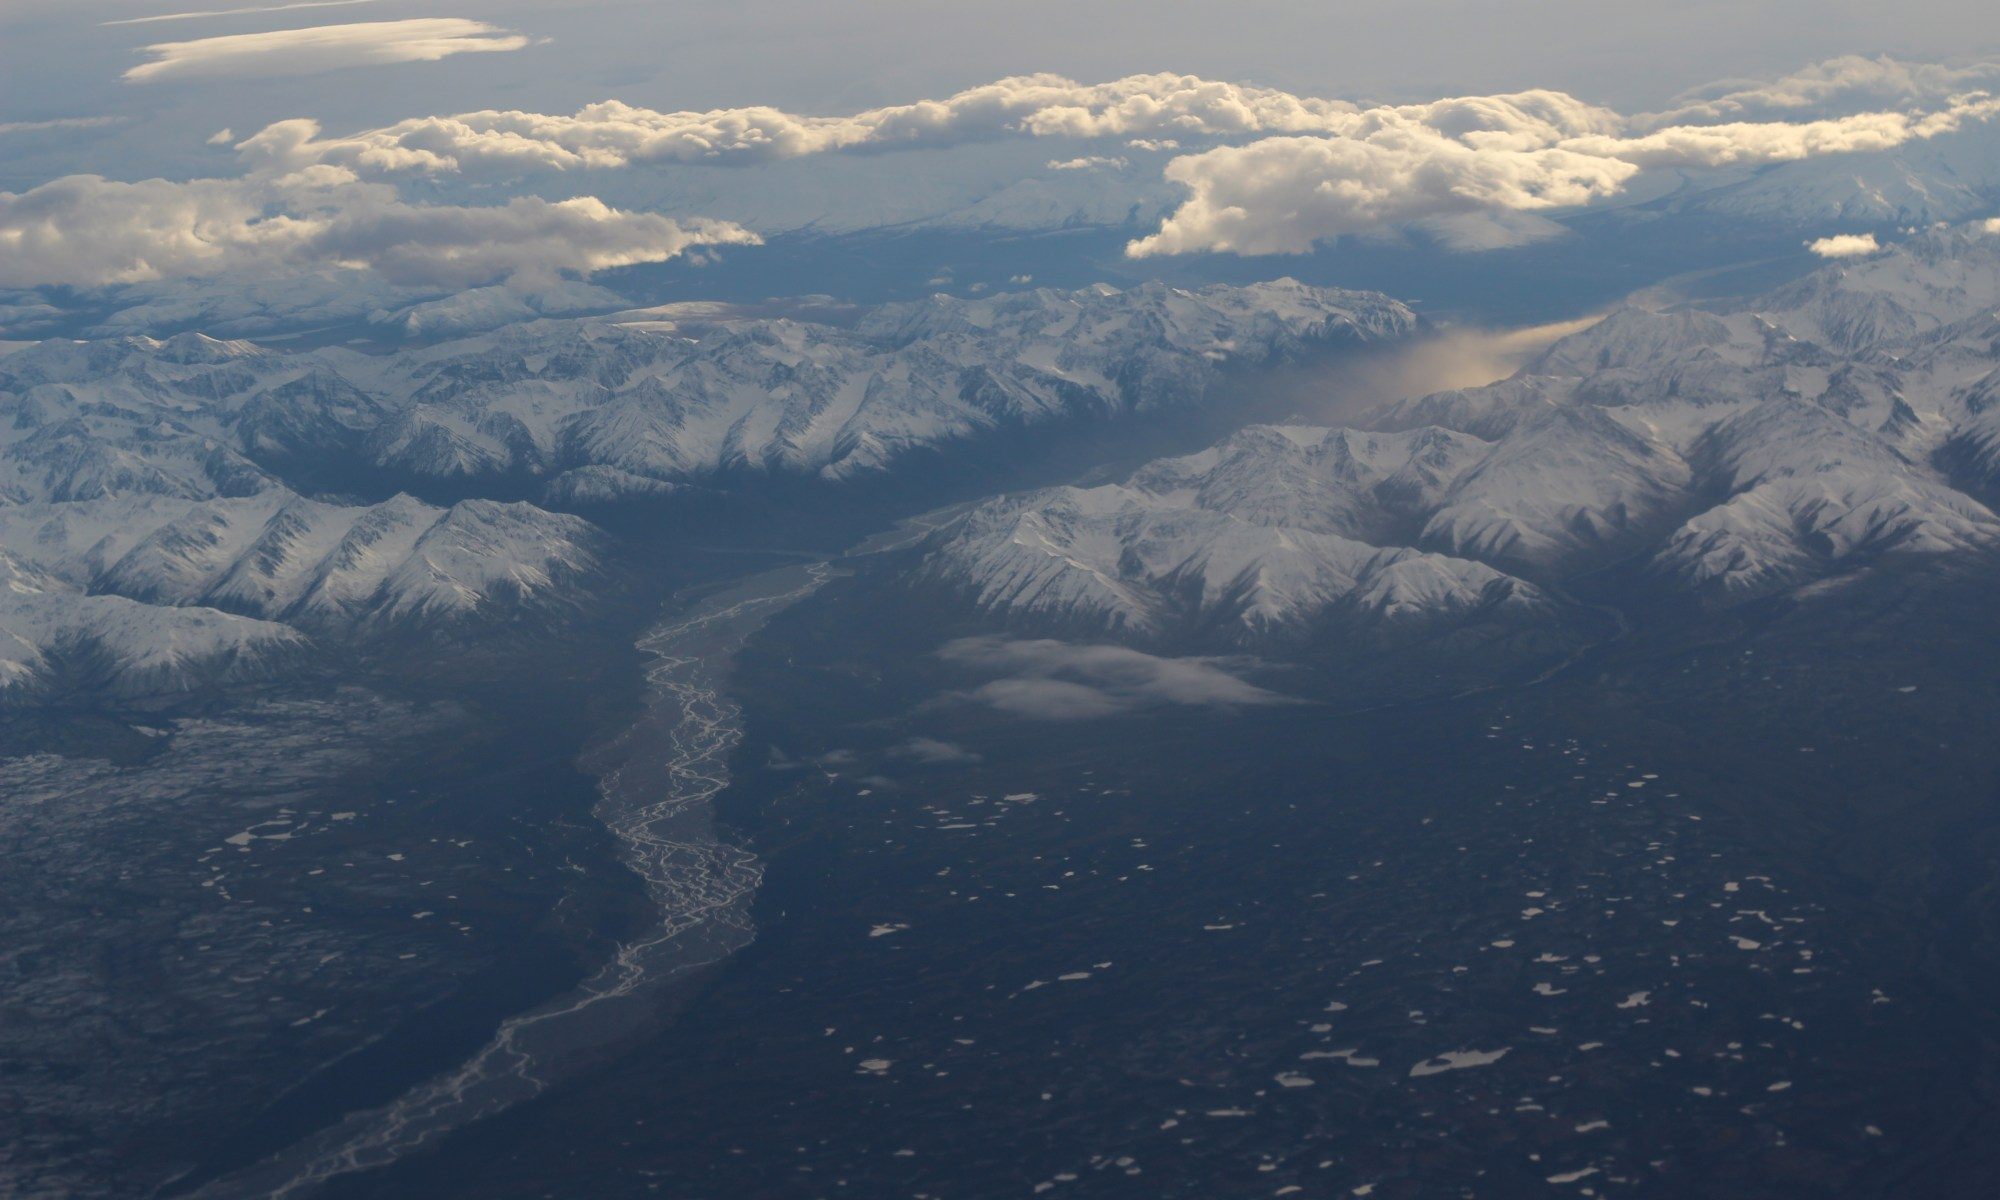 River, mountains, and cloud as seen from the plane